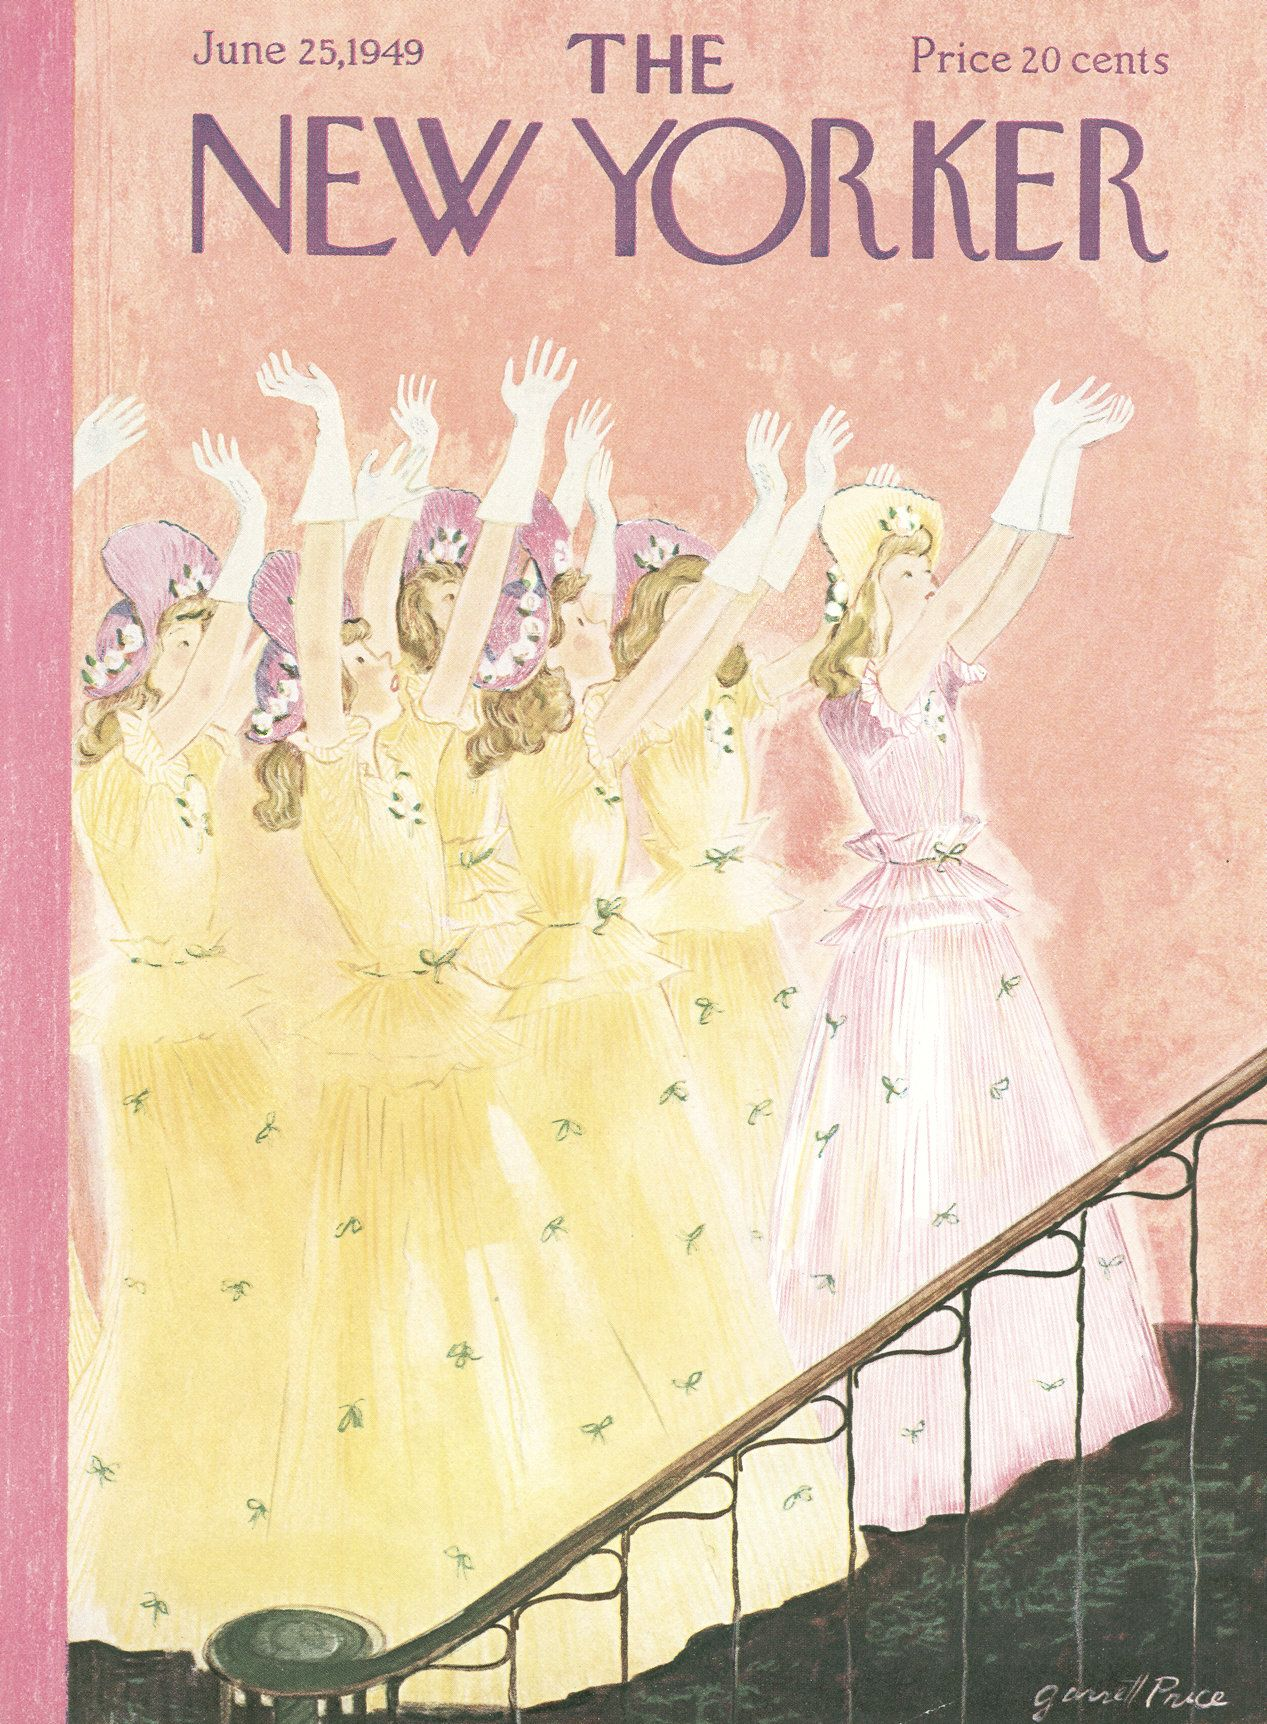 The New Yorker - Saturday, June 25, 1949 - Issue # 1271 - Vol. 25 - N° 18 - Cover by : Garrett Price